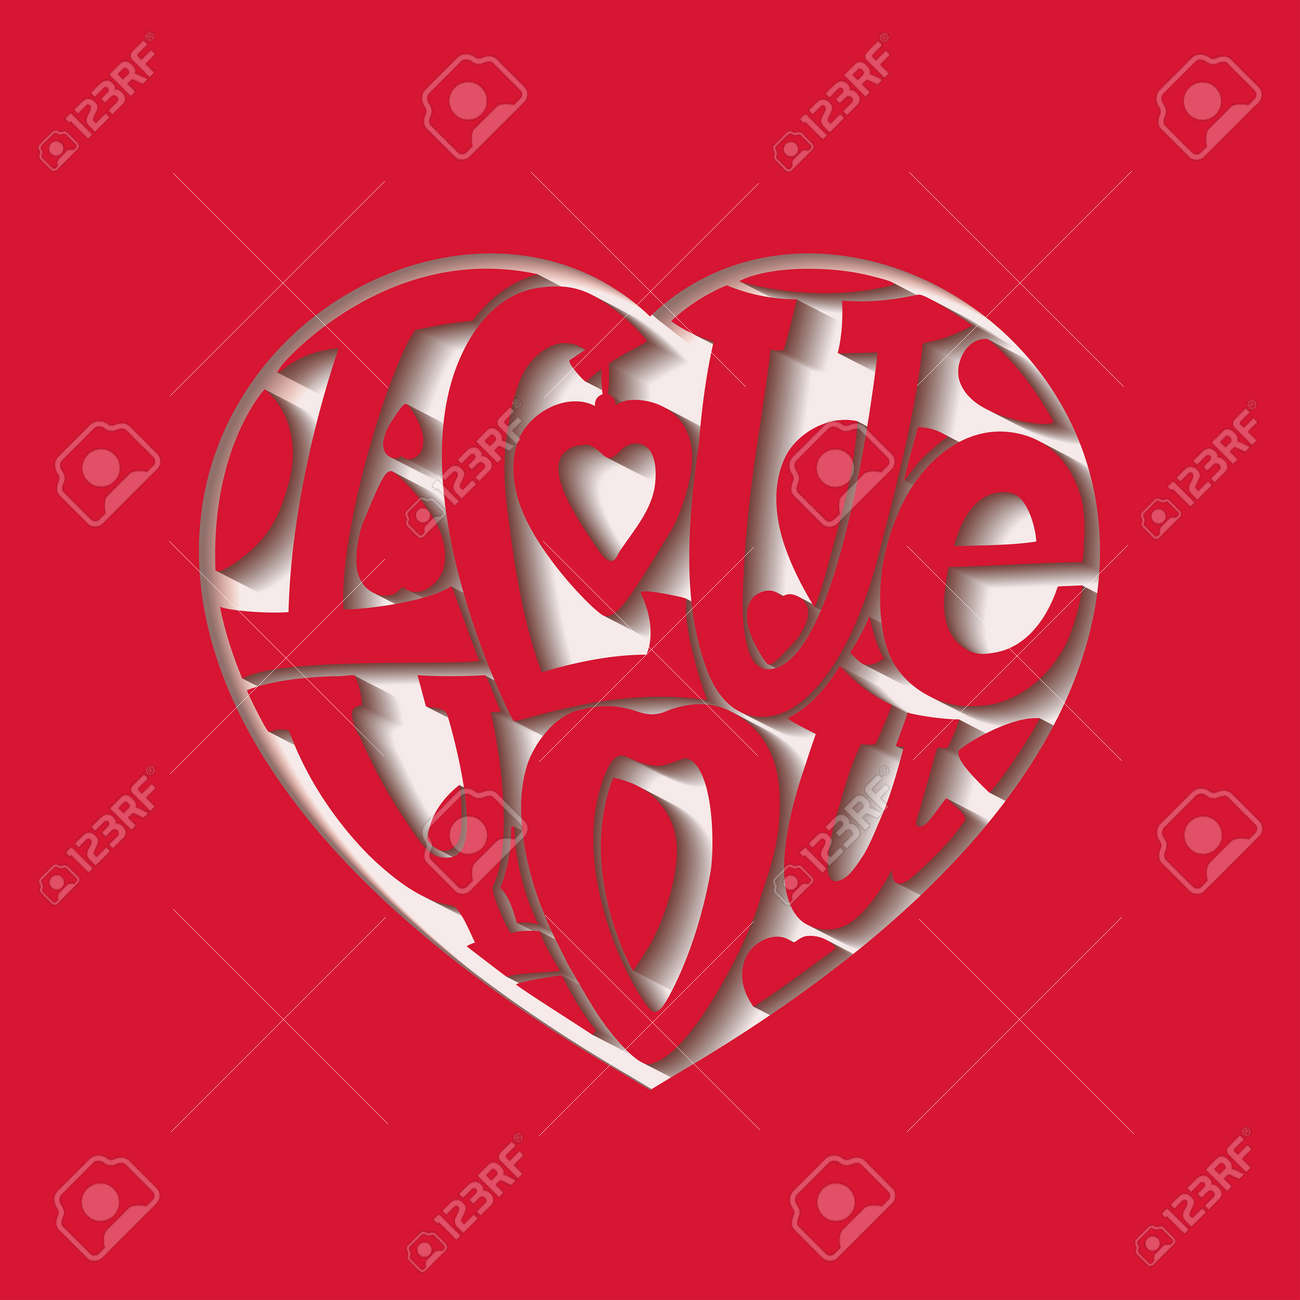 vector design lettering i love you the composition of the letters in the shape of a heart red design lettering design lettering i love you